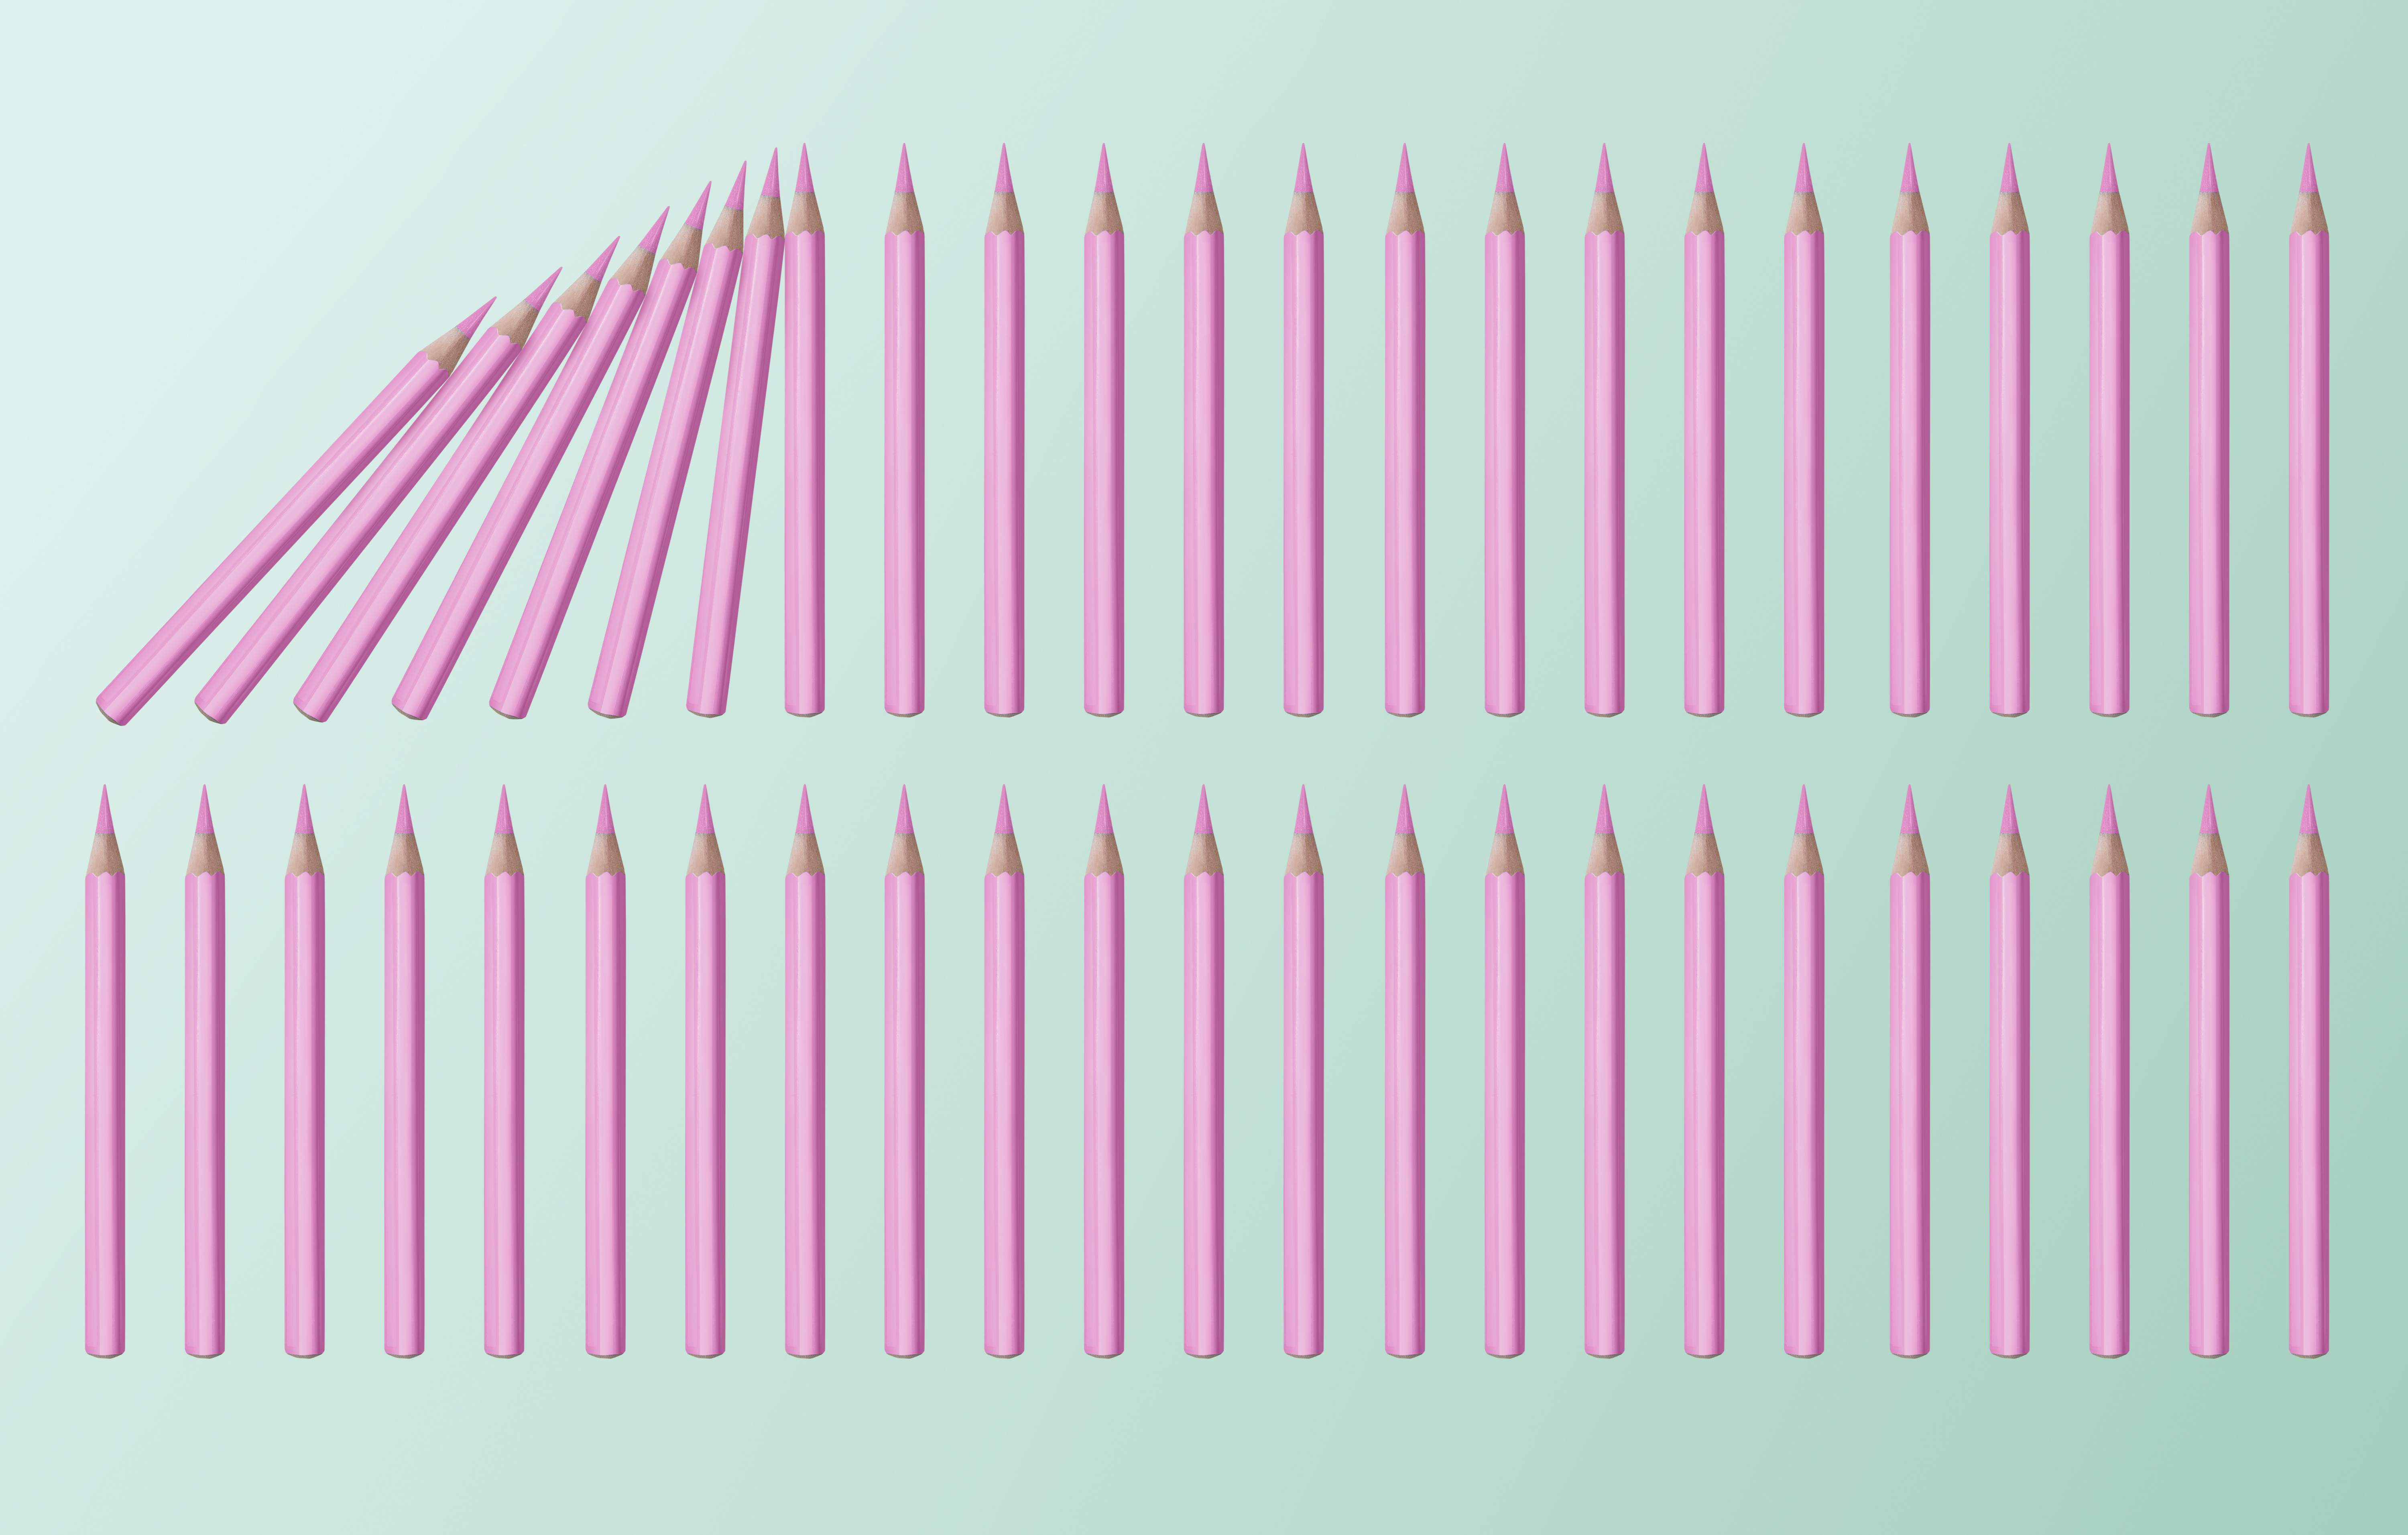 Pink pencils lined up. Some started falling causing other pencils to fall. Image showing the domino effect.